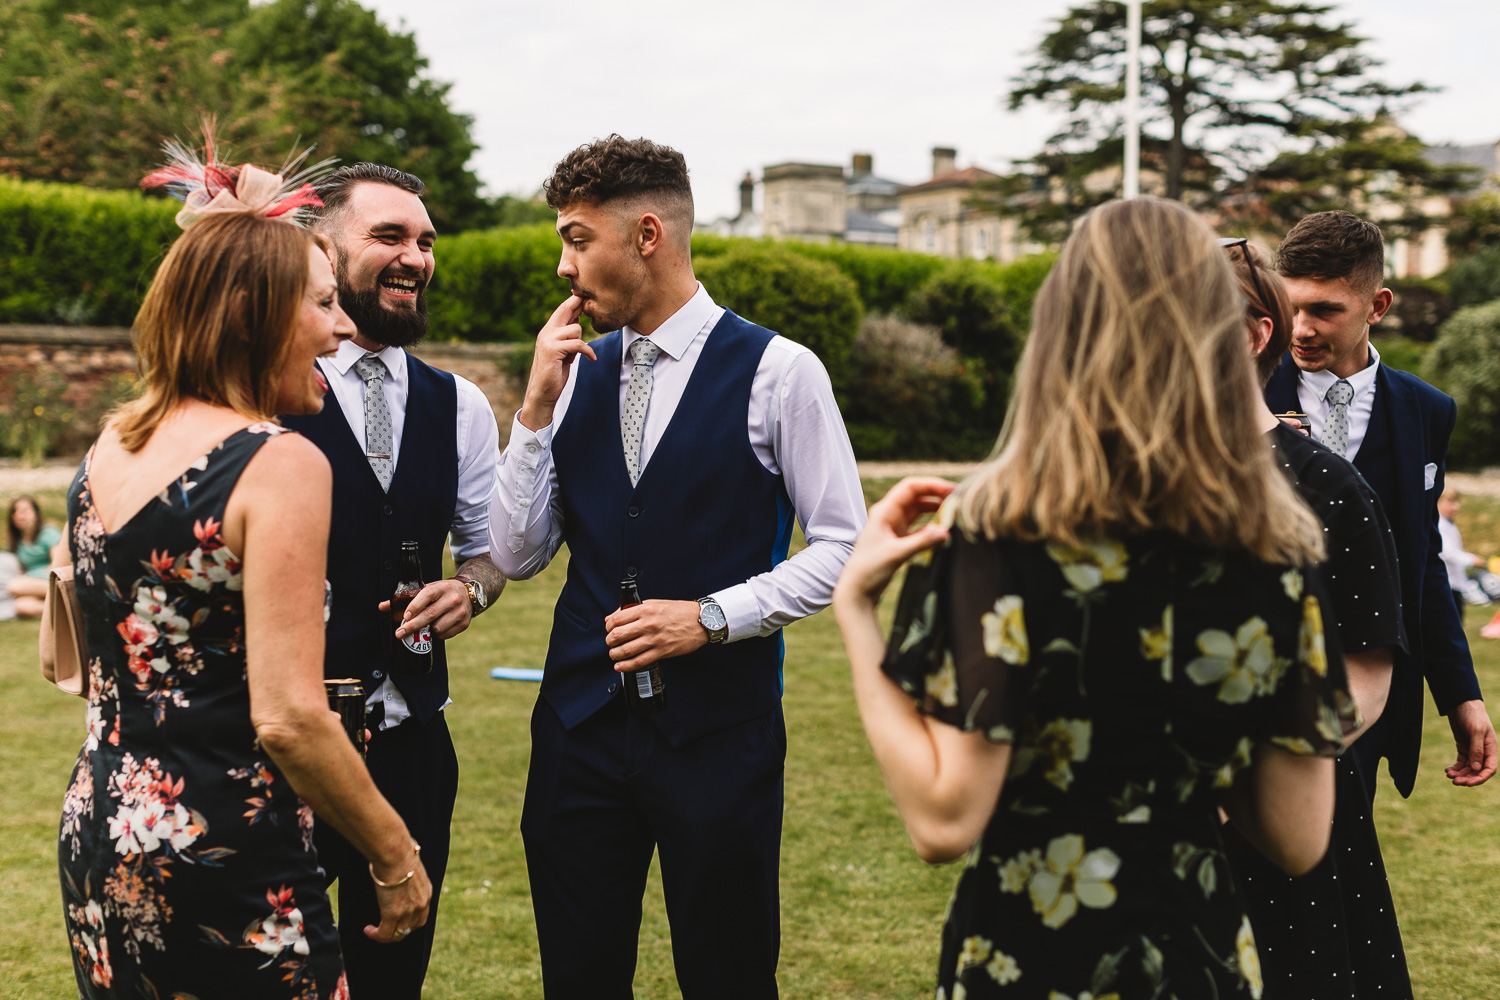 Bristol Wedding Photographer Sneak Peek-19.jpg